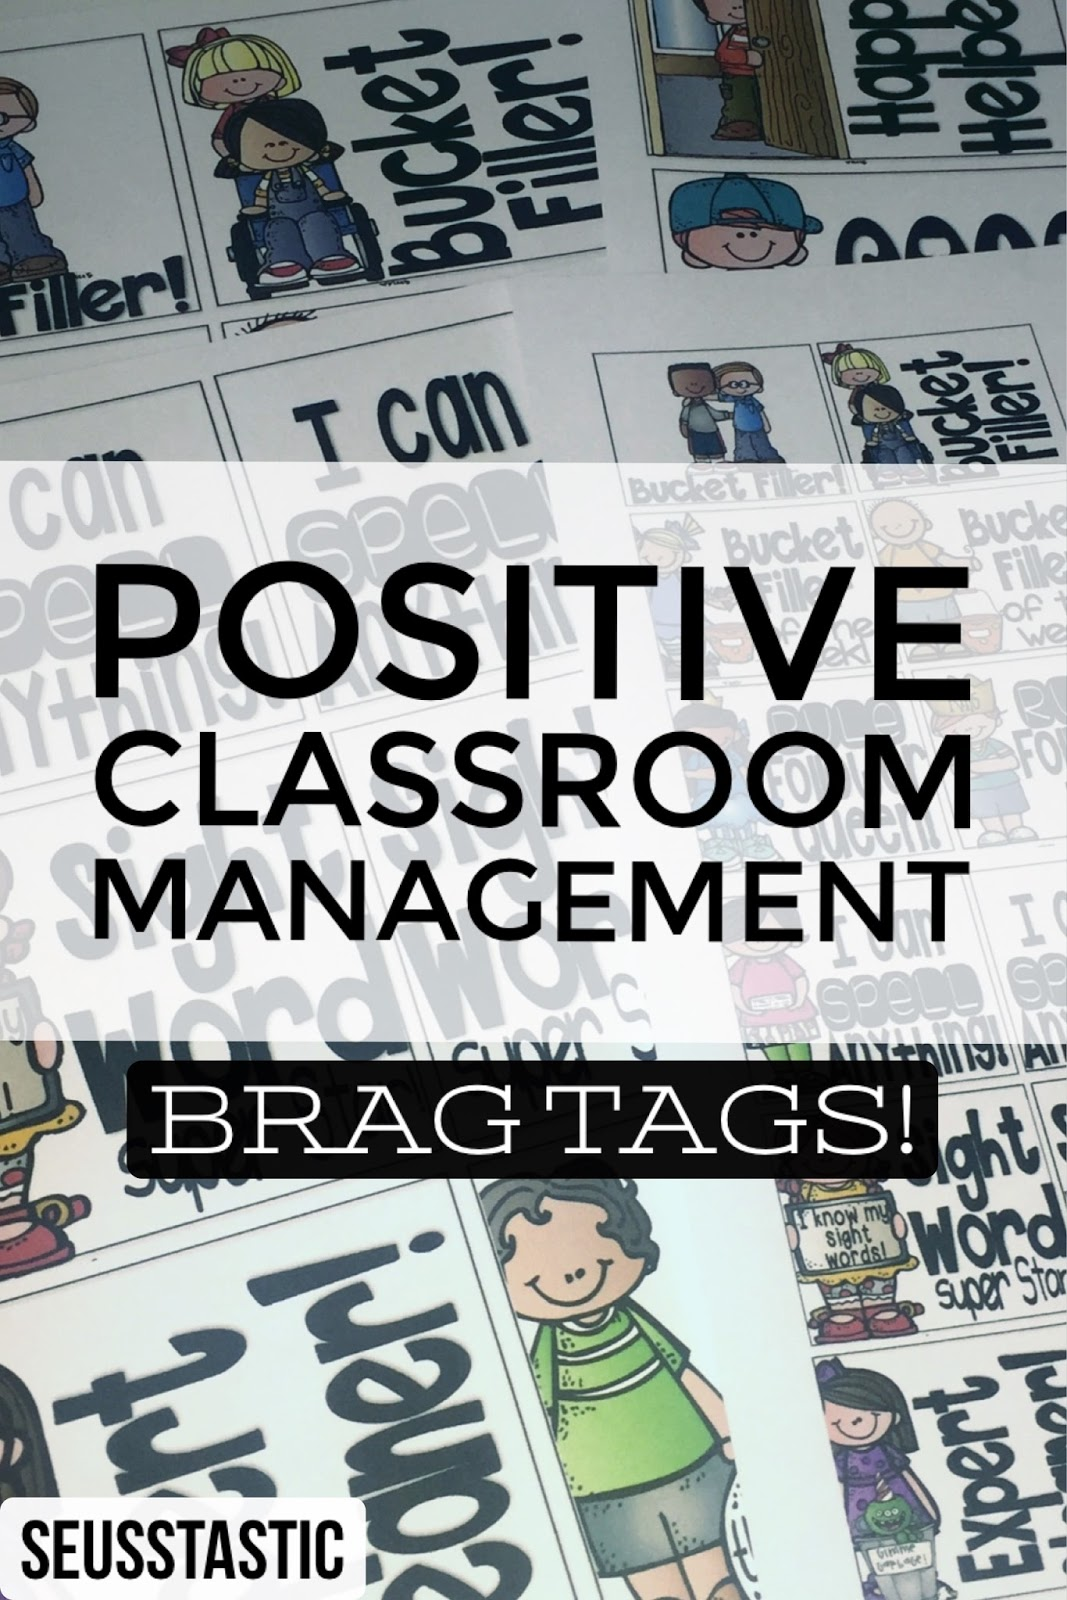 Brag Tags For Positive Classroom Management